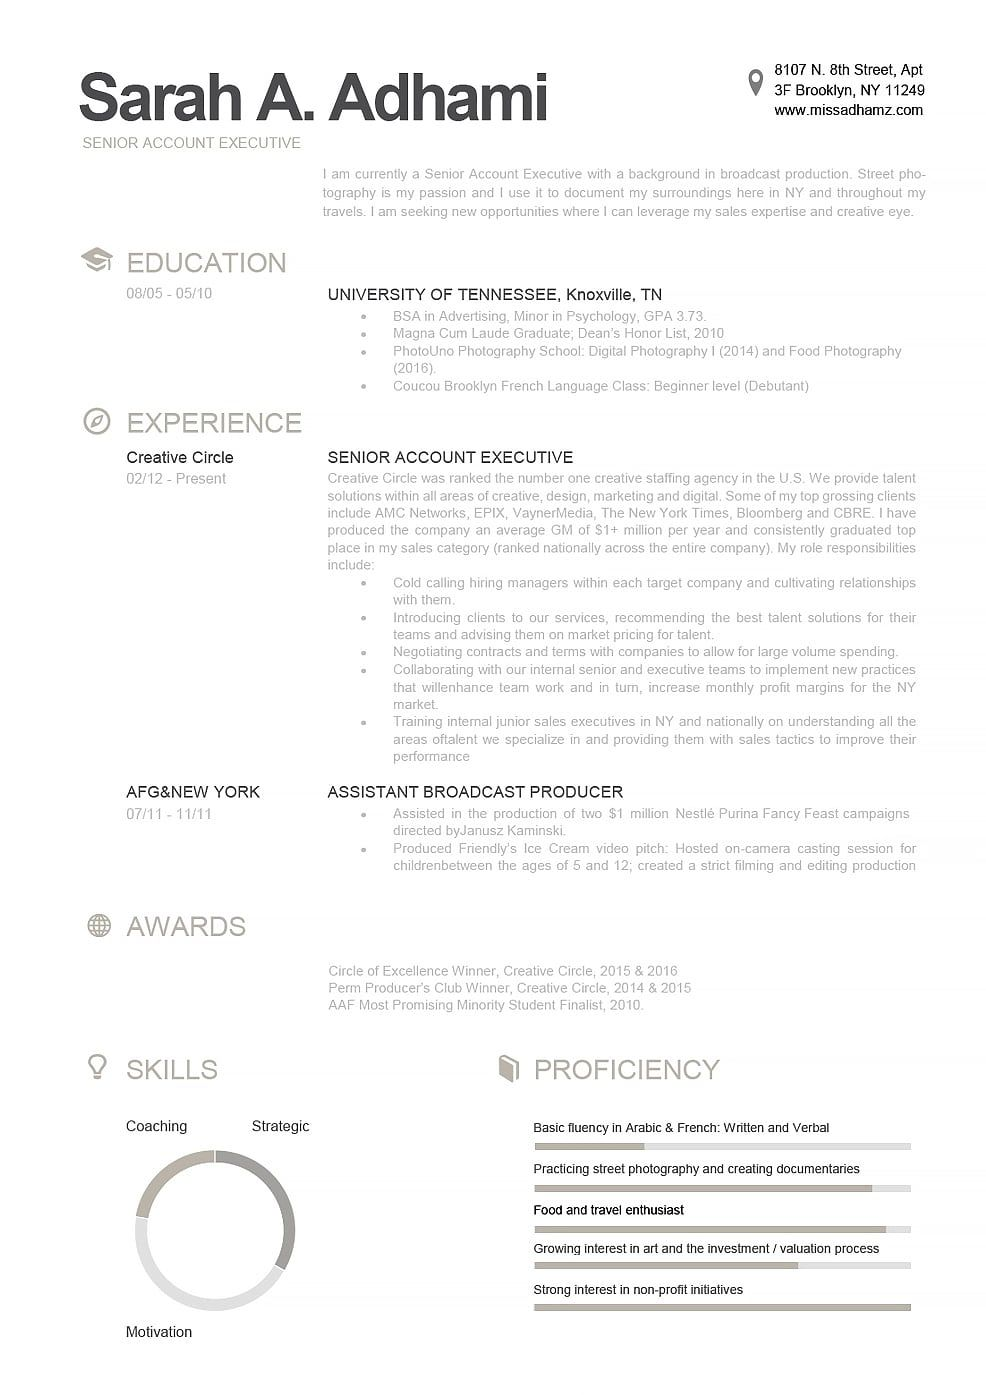 Resume Template 110790 Modern resume template, Executive